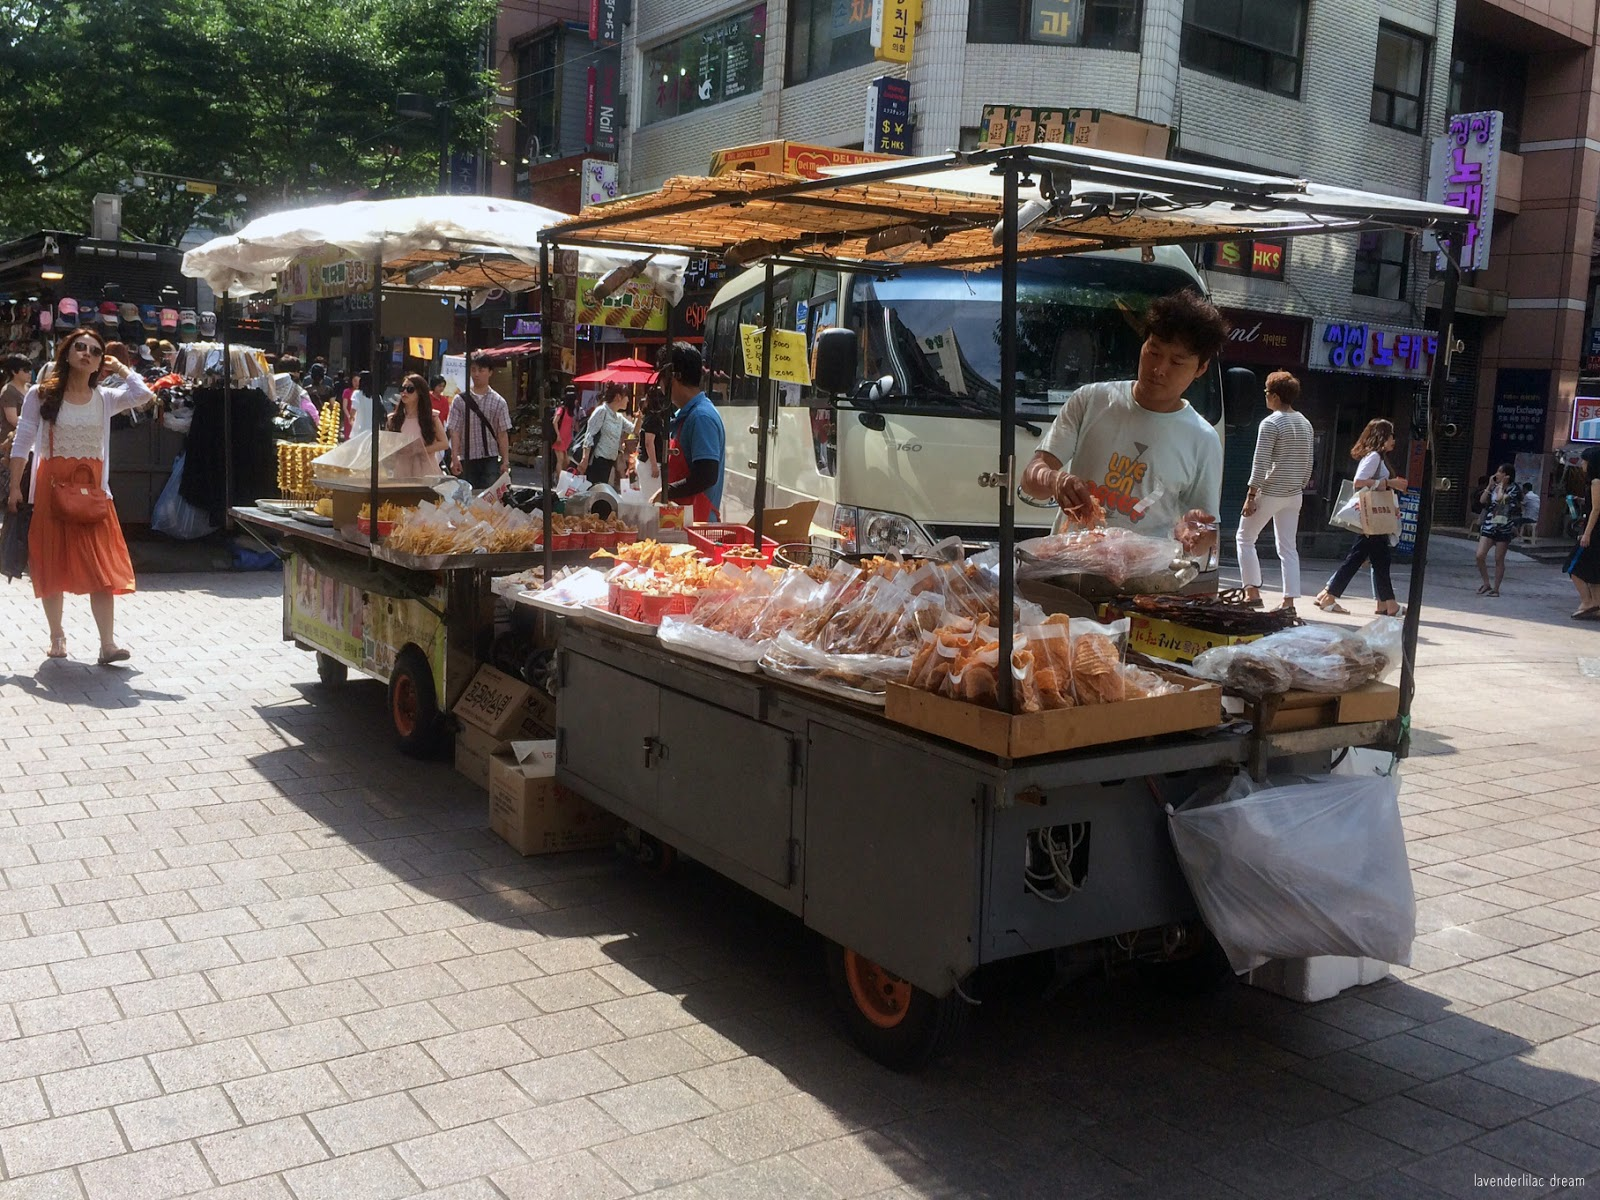 South Korea, Seoul, Myeongdong, YISS 2014, Squid food stand